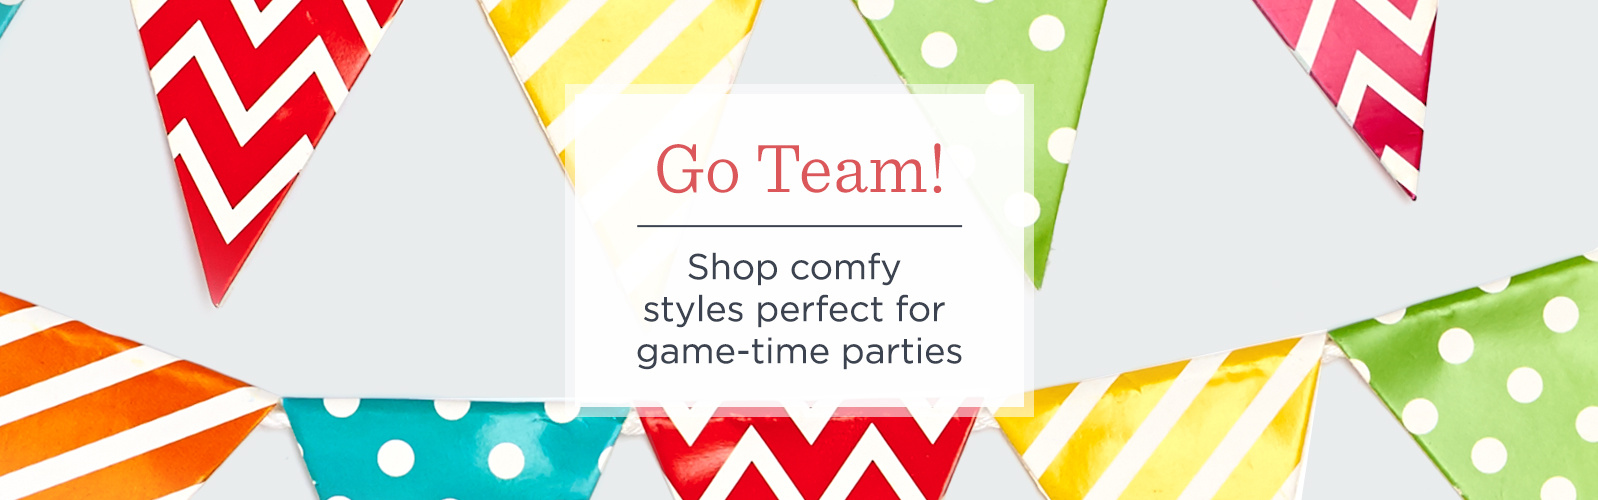 Go Team!  Shop comfy styles perfect for game-time parties